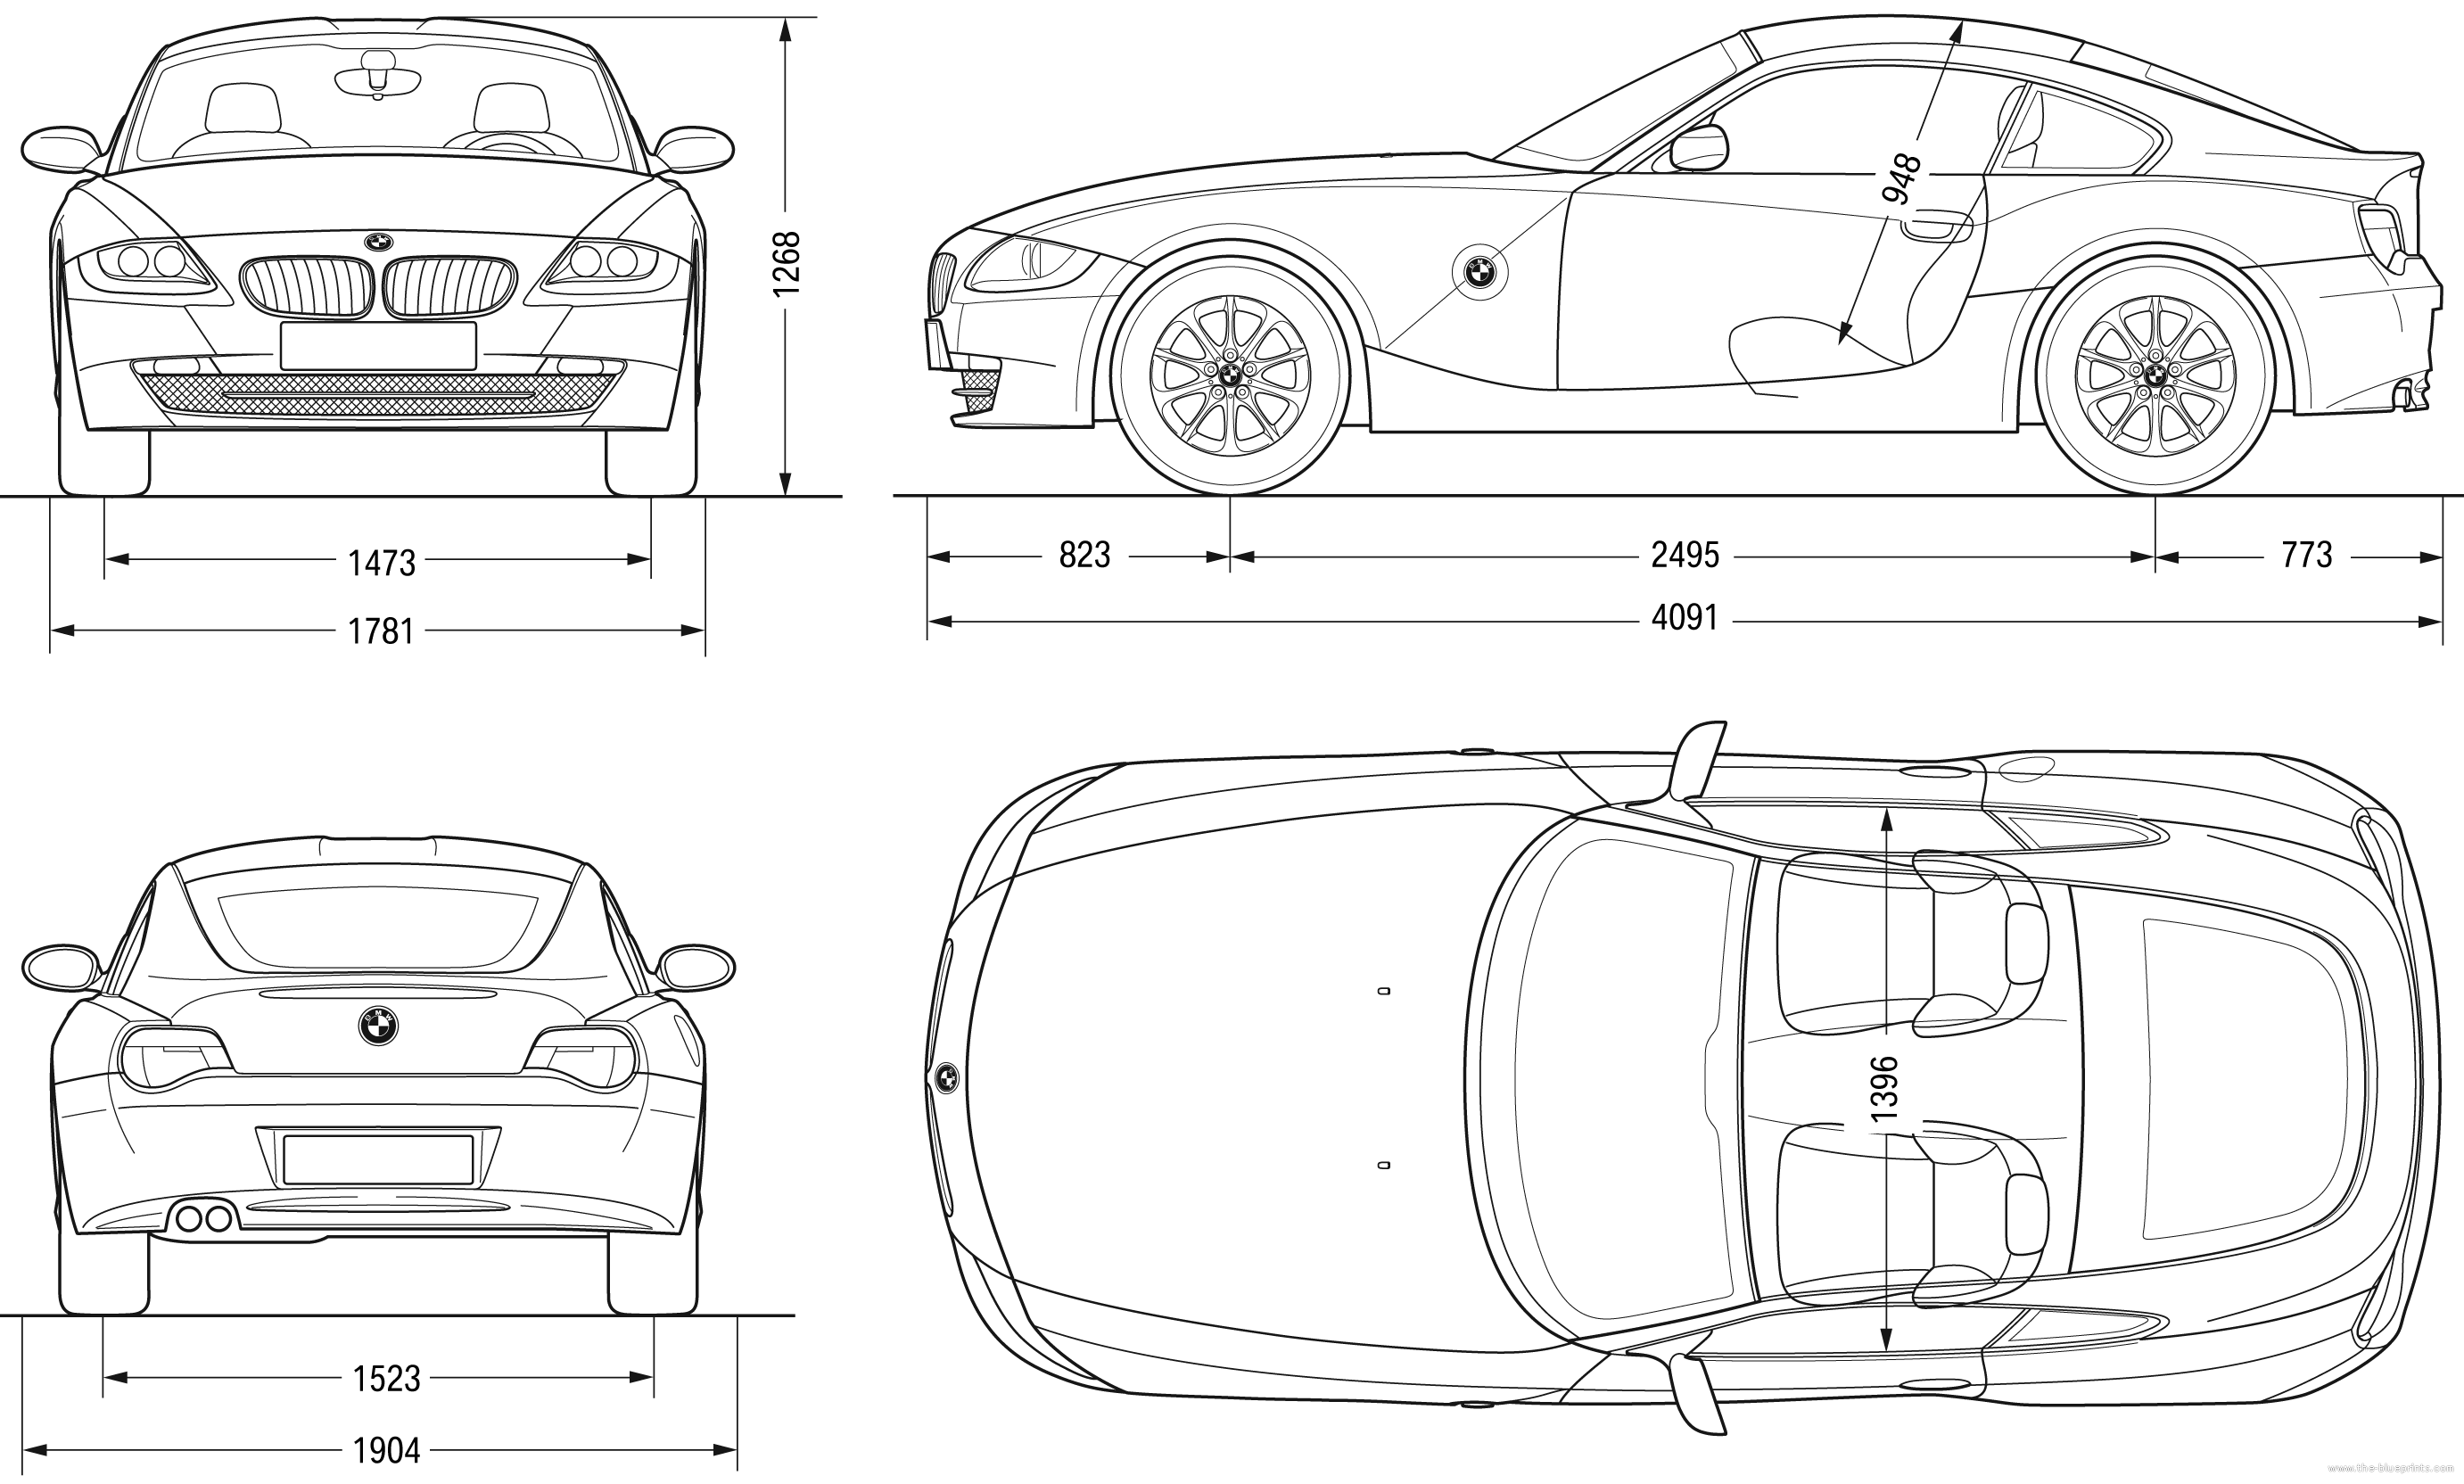 The Blueprints Com Blueprints Gt Cars Gt Bmw Gt Bmw Z4